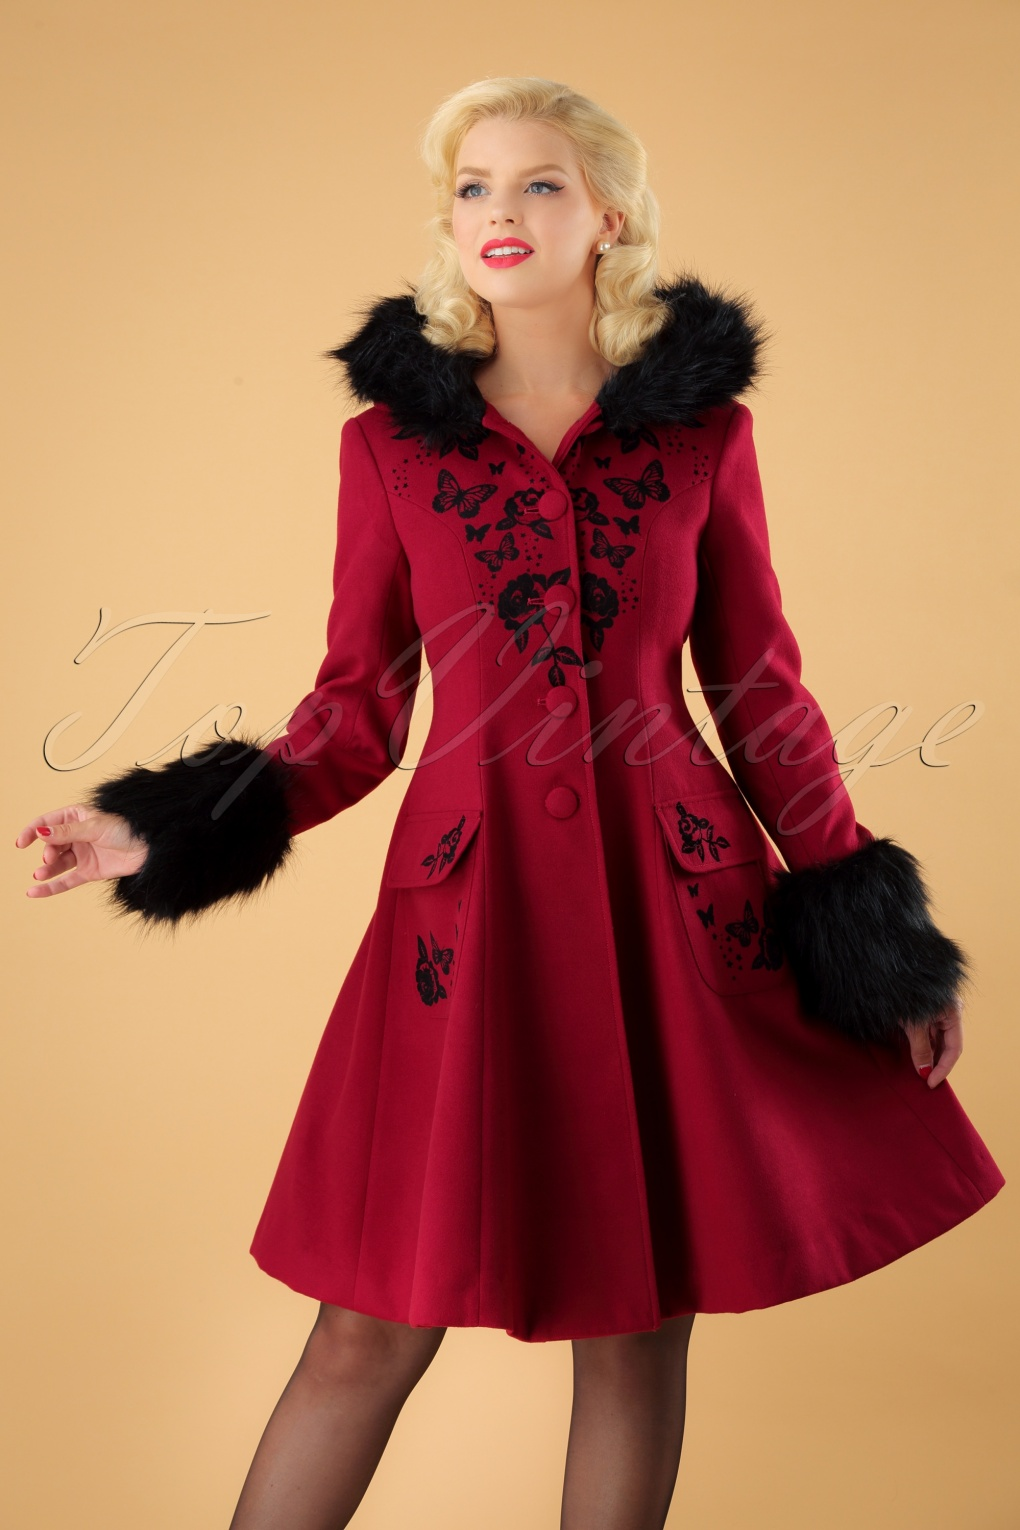 Vintage Coats & Jackets | Retro Coats and Jackets 40s Anderson Coat in Red £132.85 AT vintagedancer.com